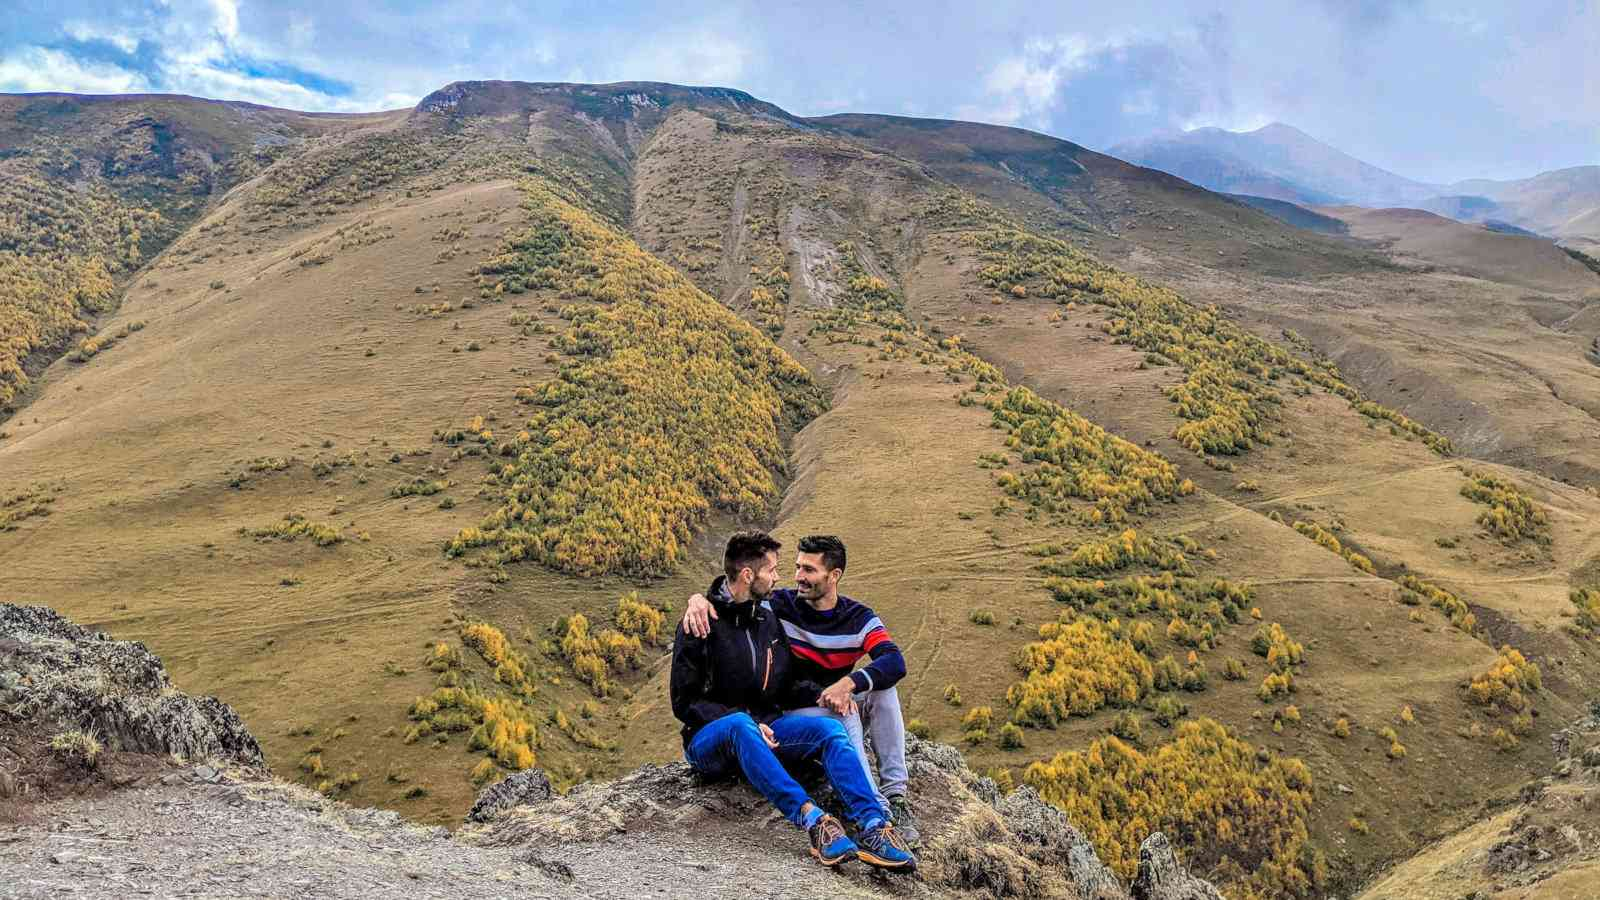 Gay couple trekking in the Kazbegi region of Georgia